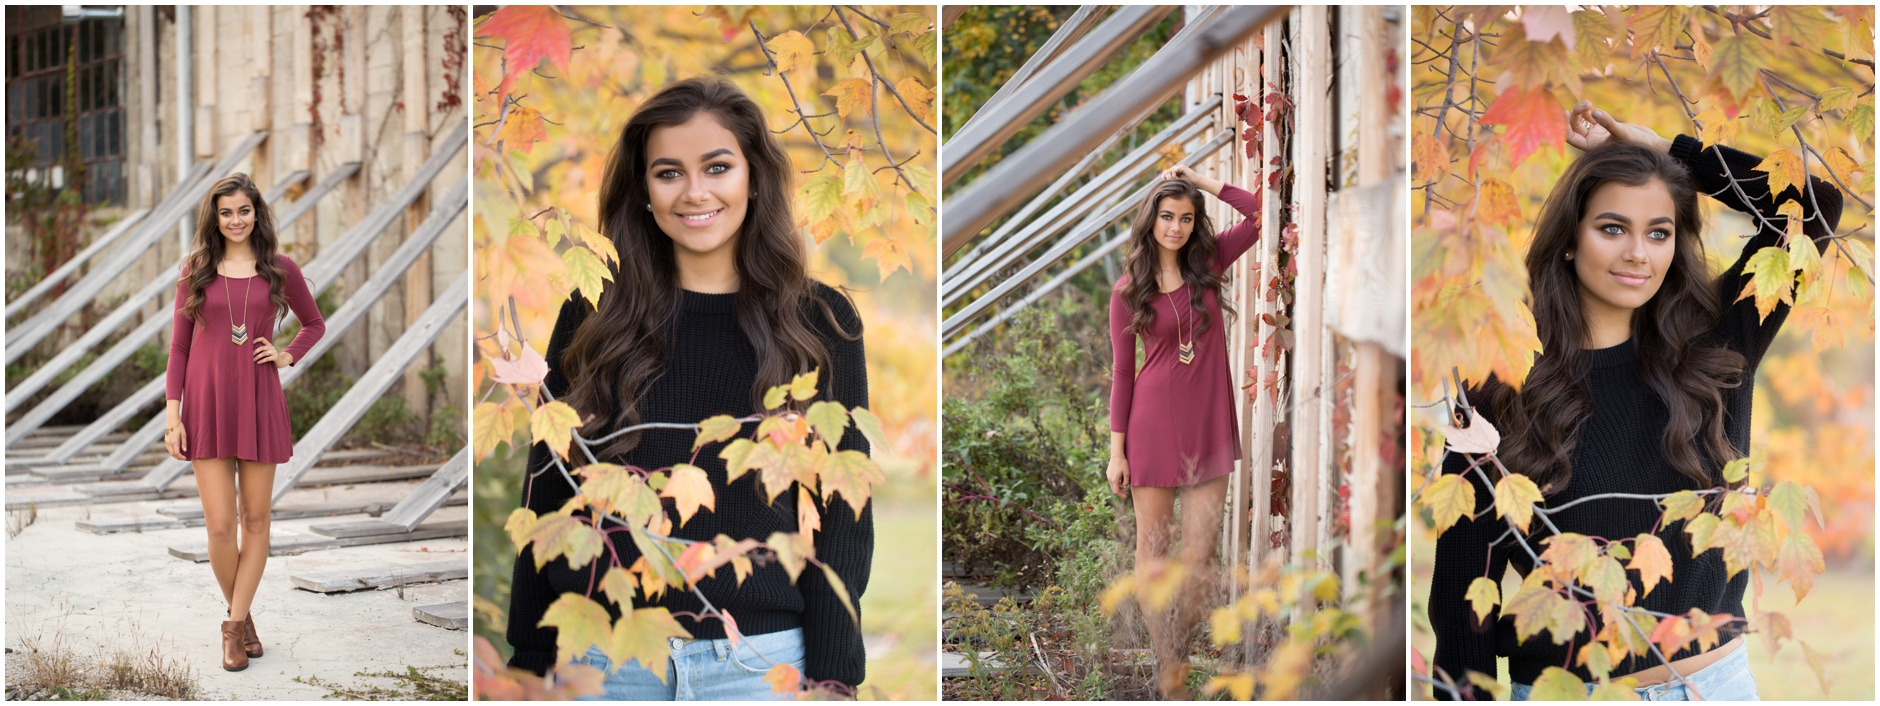 Fall senior session by Aubrey Grace Photo